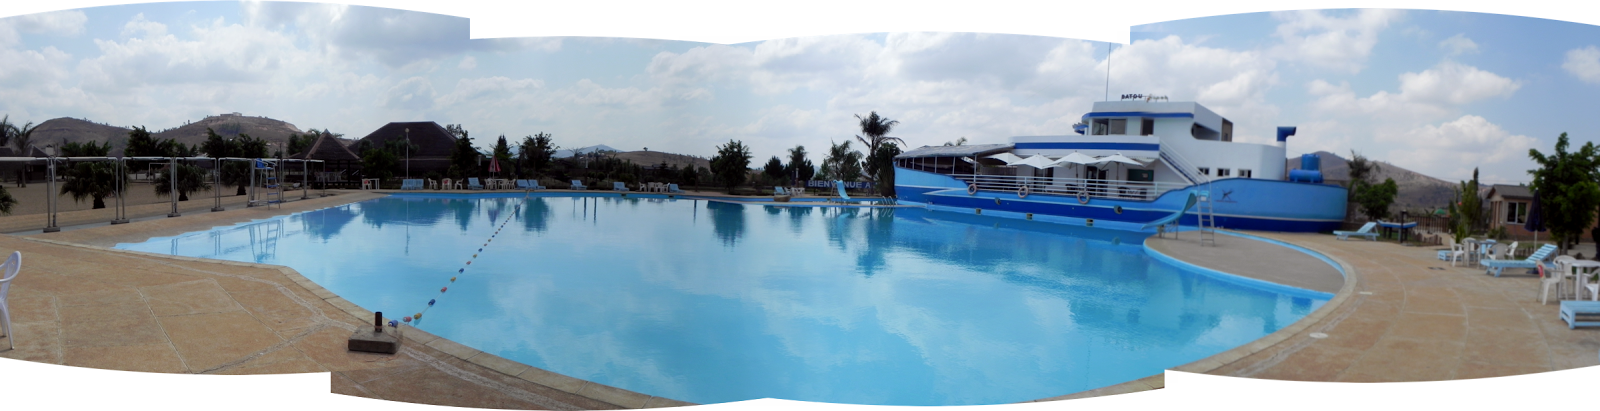 Batou Beach Pool